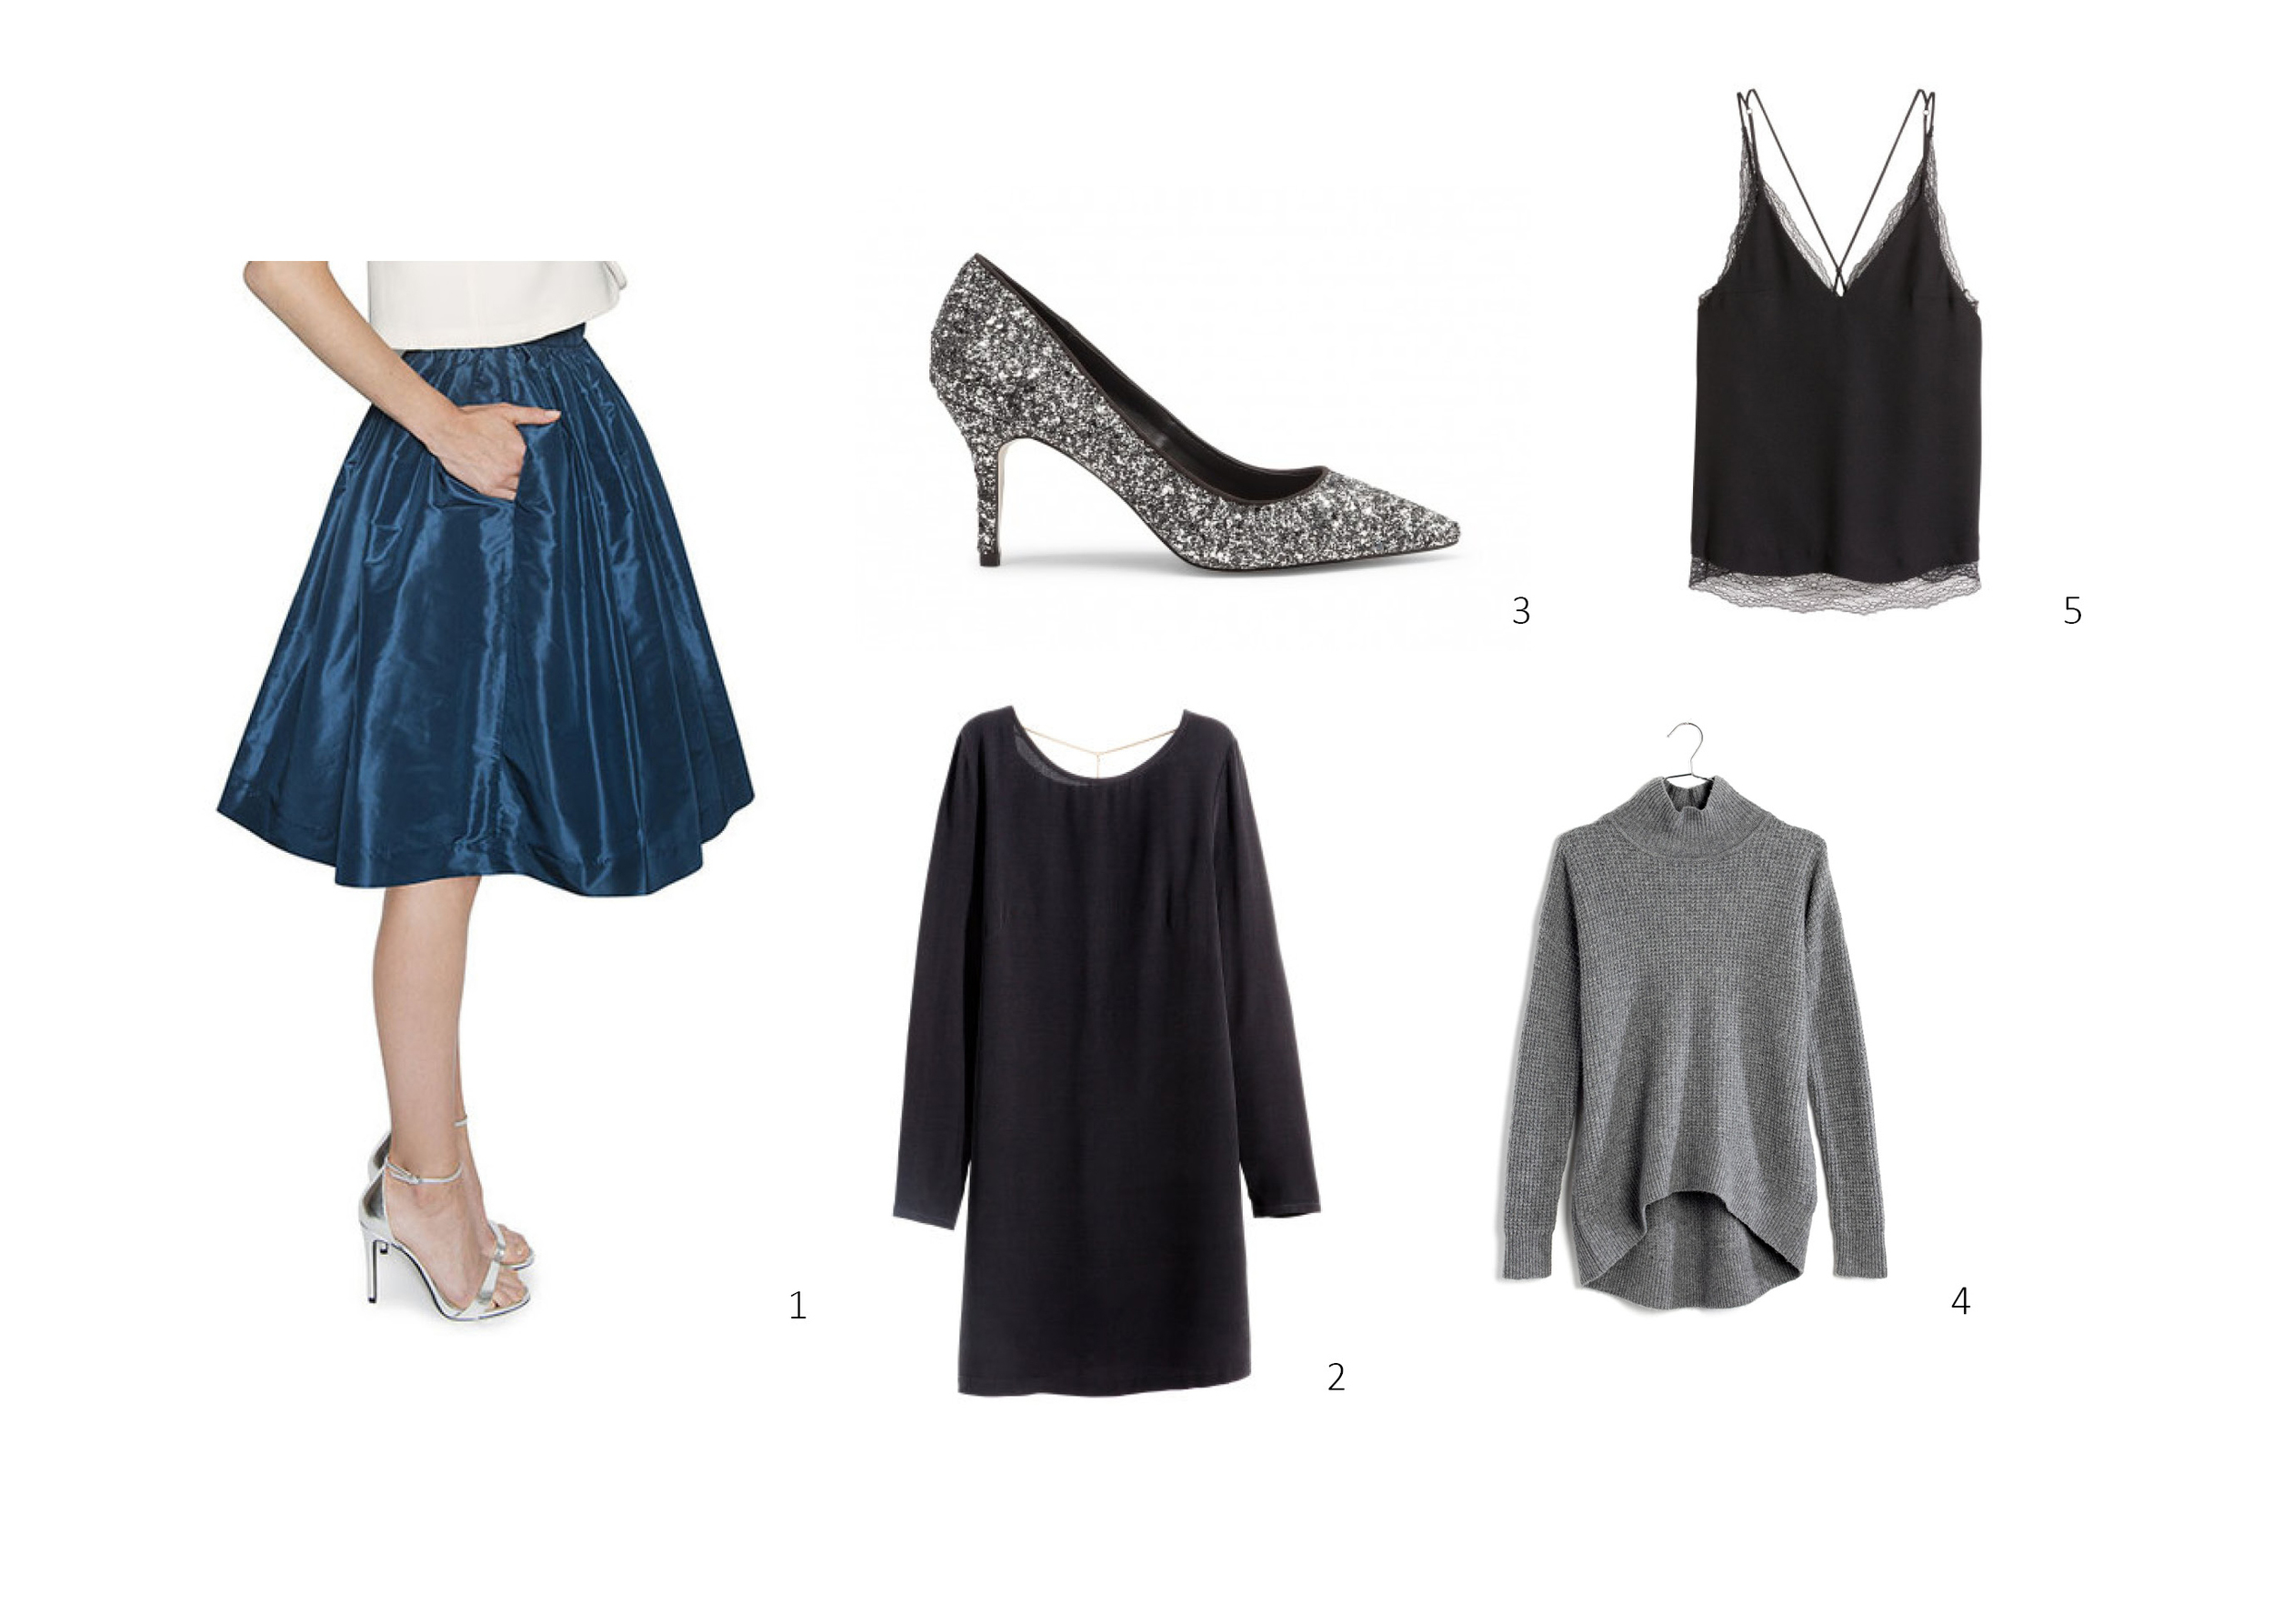 1.Party Sirts Deep Sea Lady Length $245 ;  2.H&M Crepe Dress $49.95 ;  3.Sole Society Cahya $69.95 ;  4.Madewell Wafflestitch Turtleneck Sweater $89.50 ;  5.H&M Double-layer Lace Camisole Top $39.99